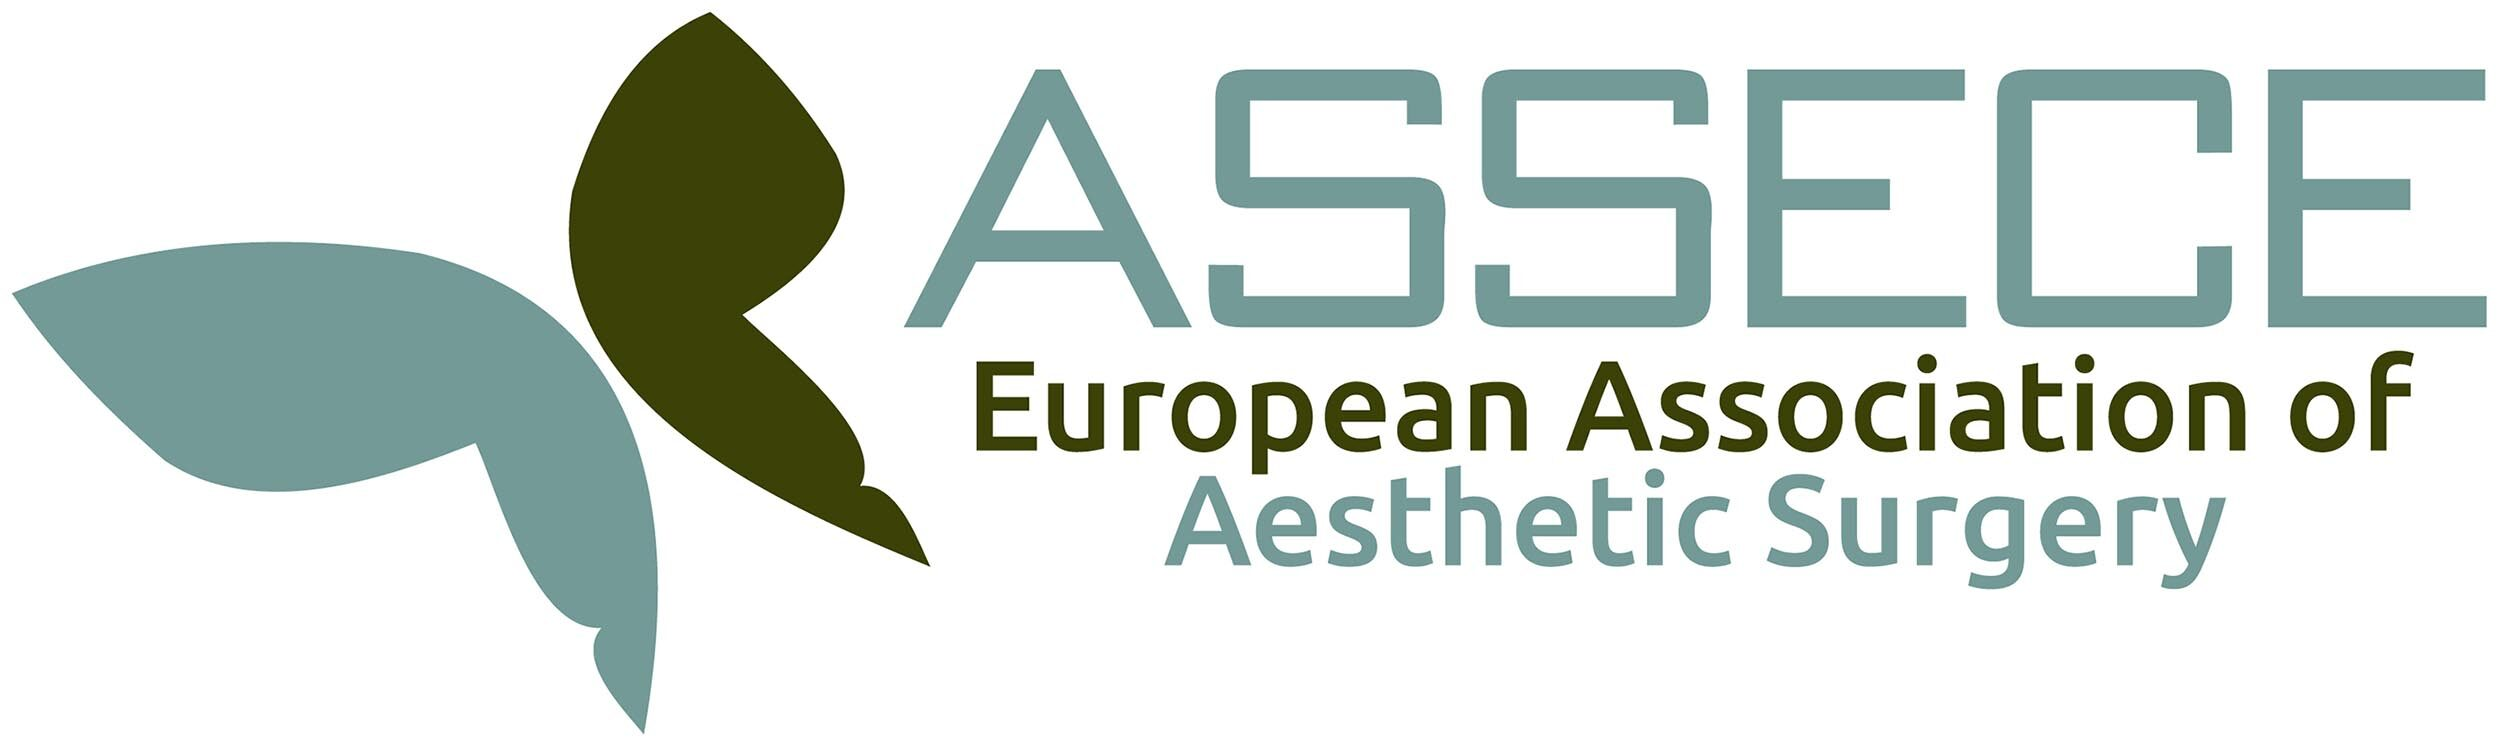 European Association of Aesthetic Surgery